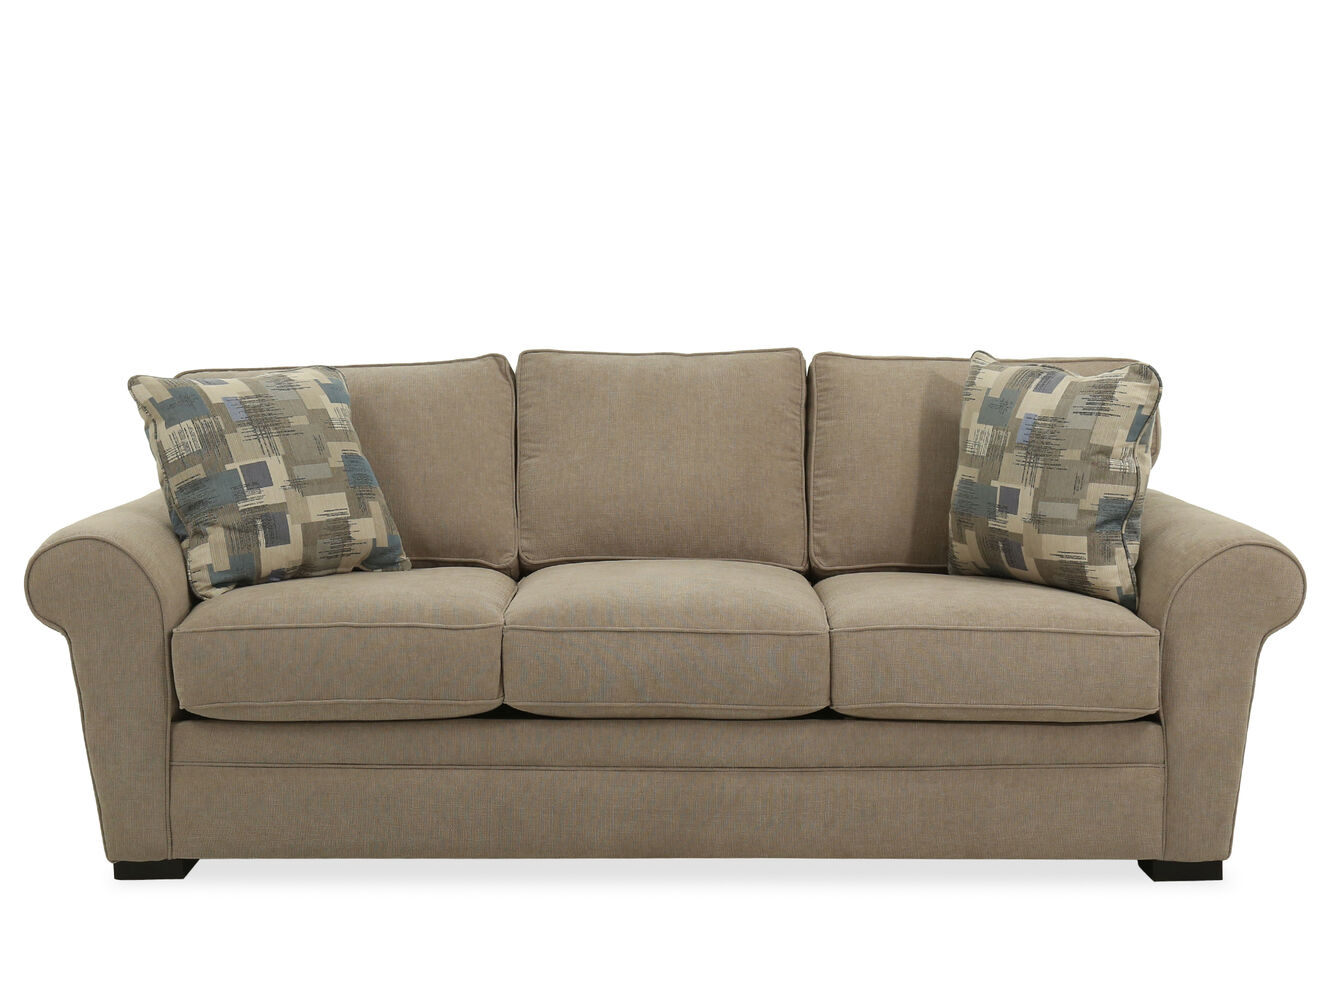 Casual queen sleeper sofa in light brown mathis brothers for Casual couch